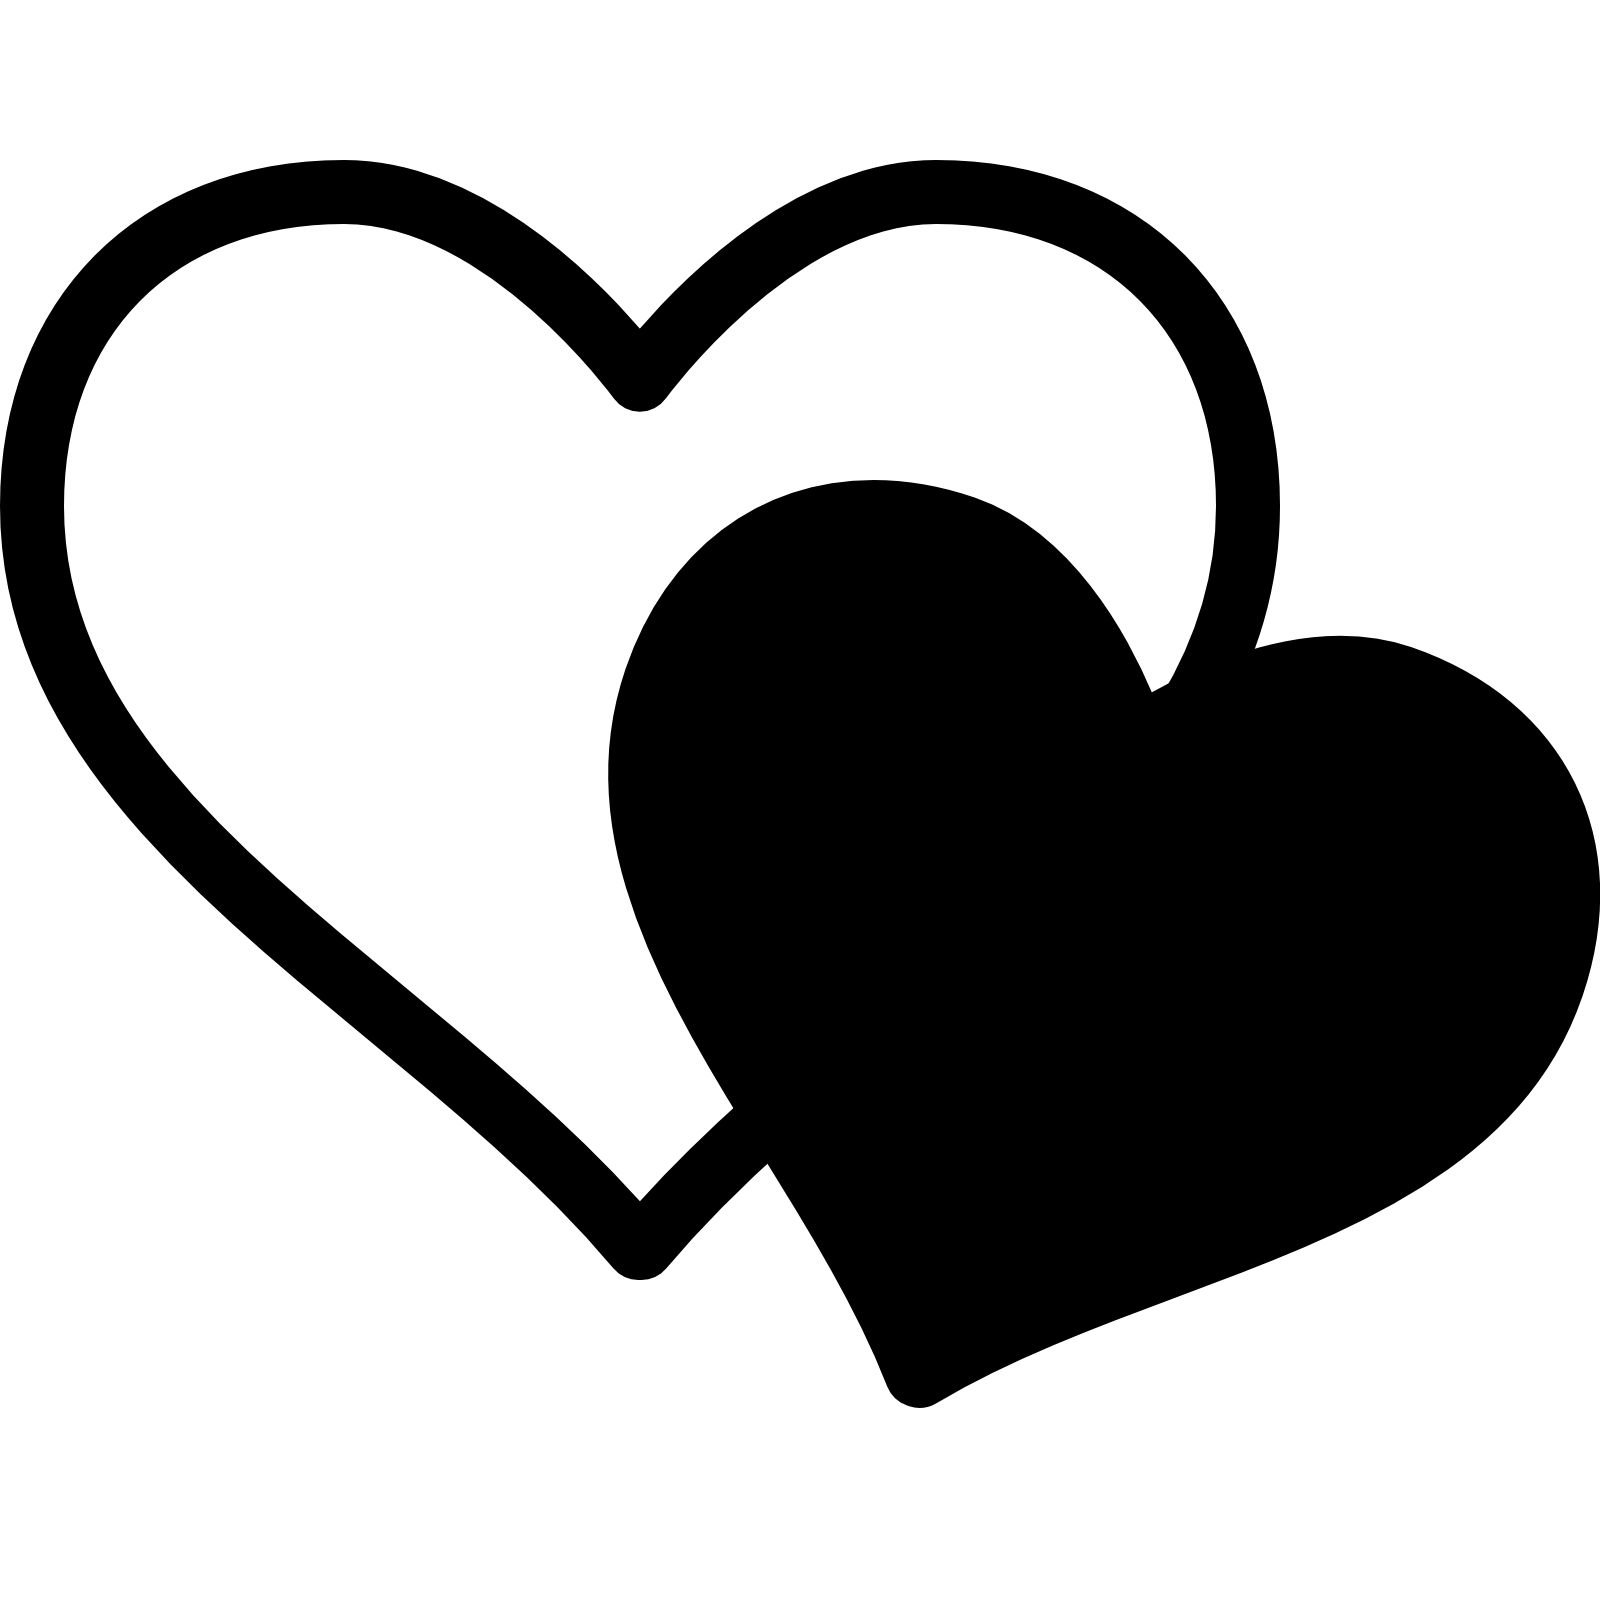 Computer Icons Tinder Dating Clip art.